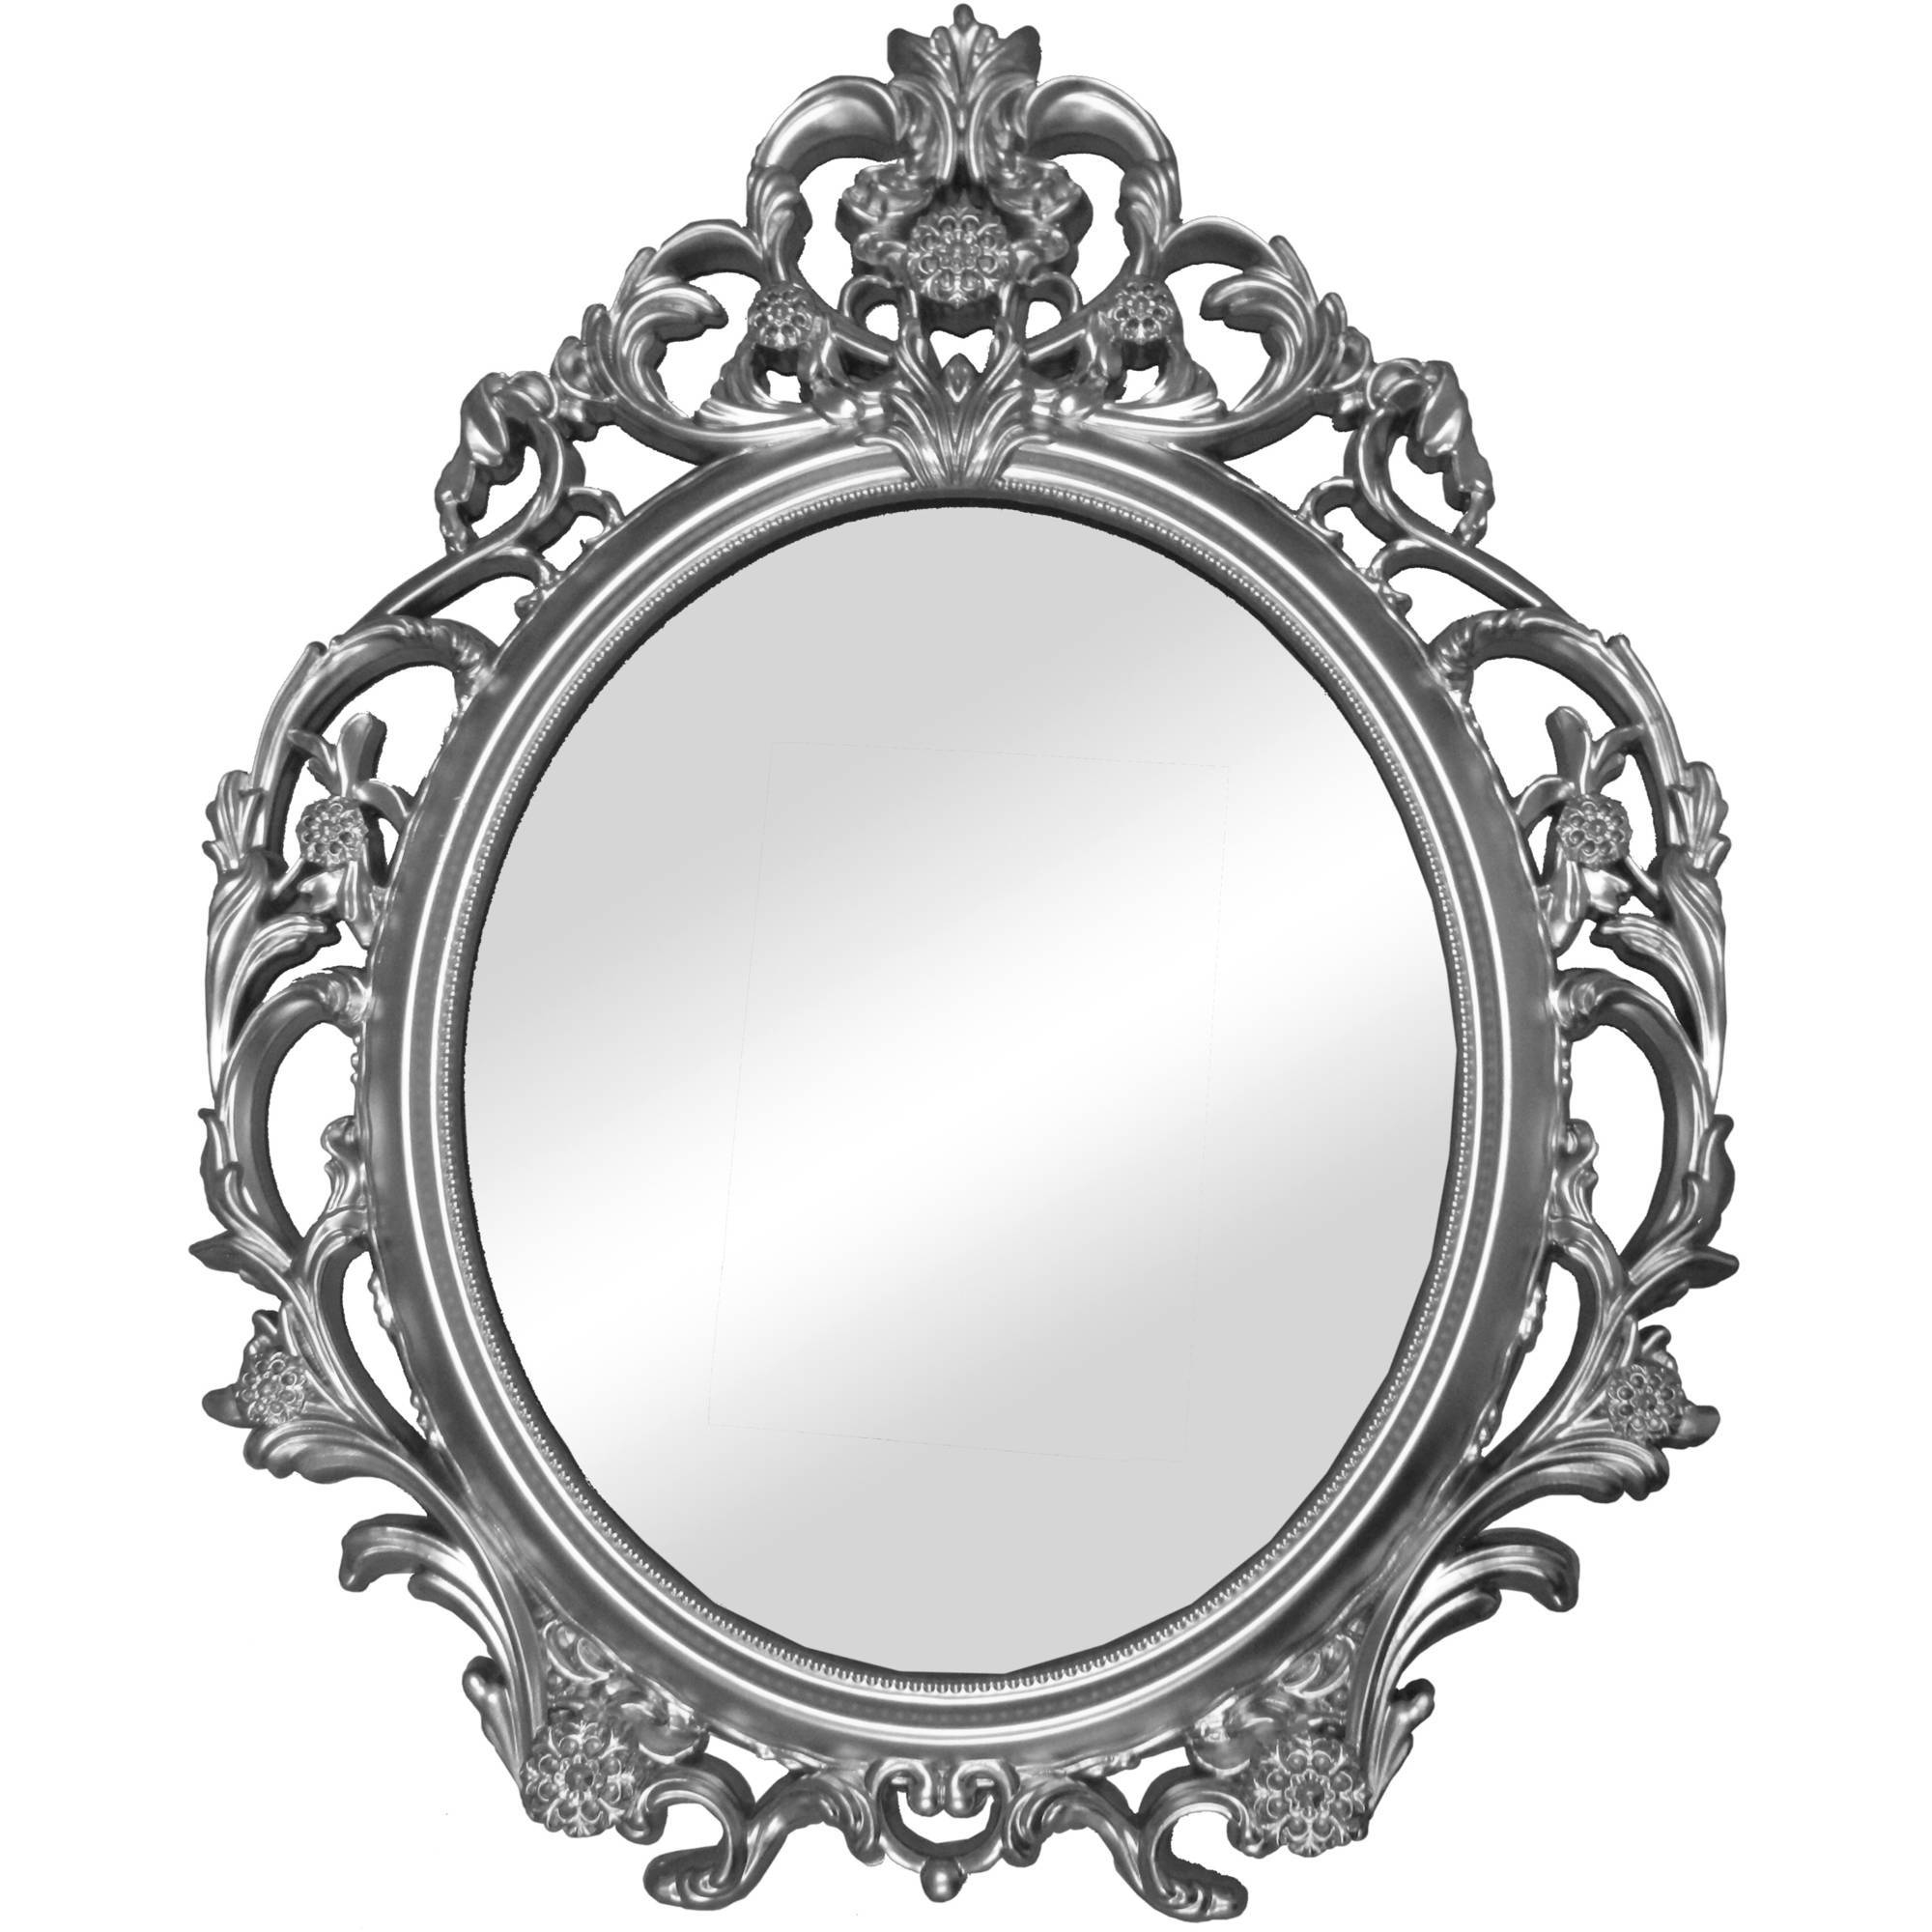 Better Homes And Gardens Baroque Wall Mirror - Walmart for Gothic Wall Mirrors (Image 11 of 25)